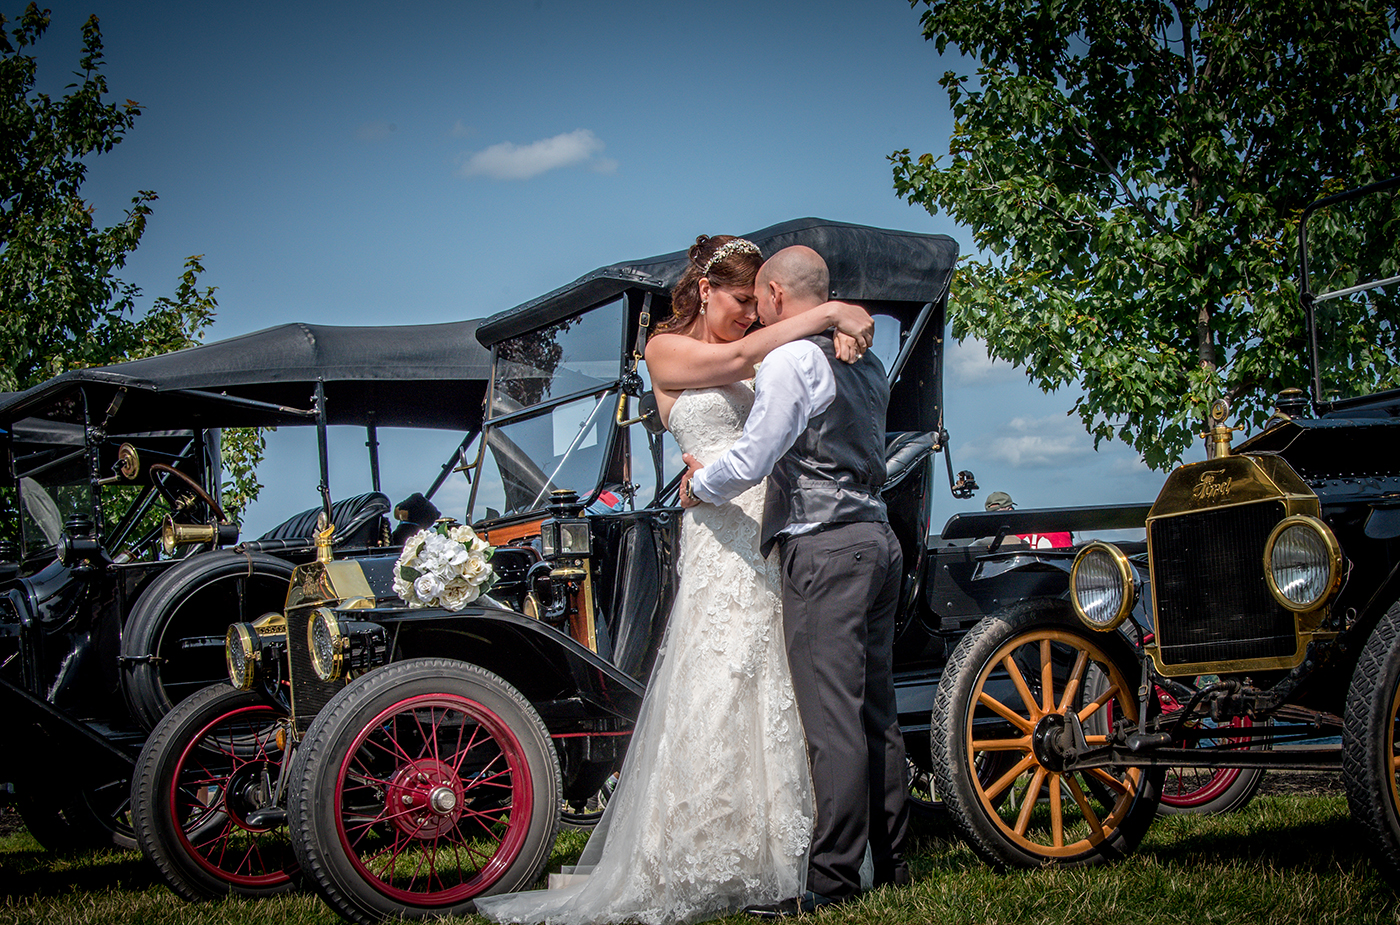 All Occasions Photography Albany NY - Wedding Photography Bride & Groom Against Vintage Car